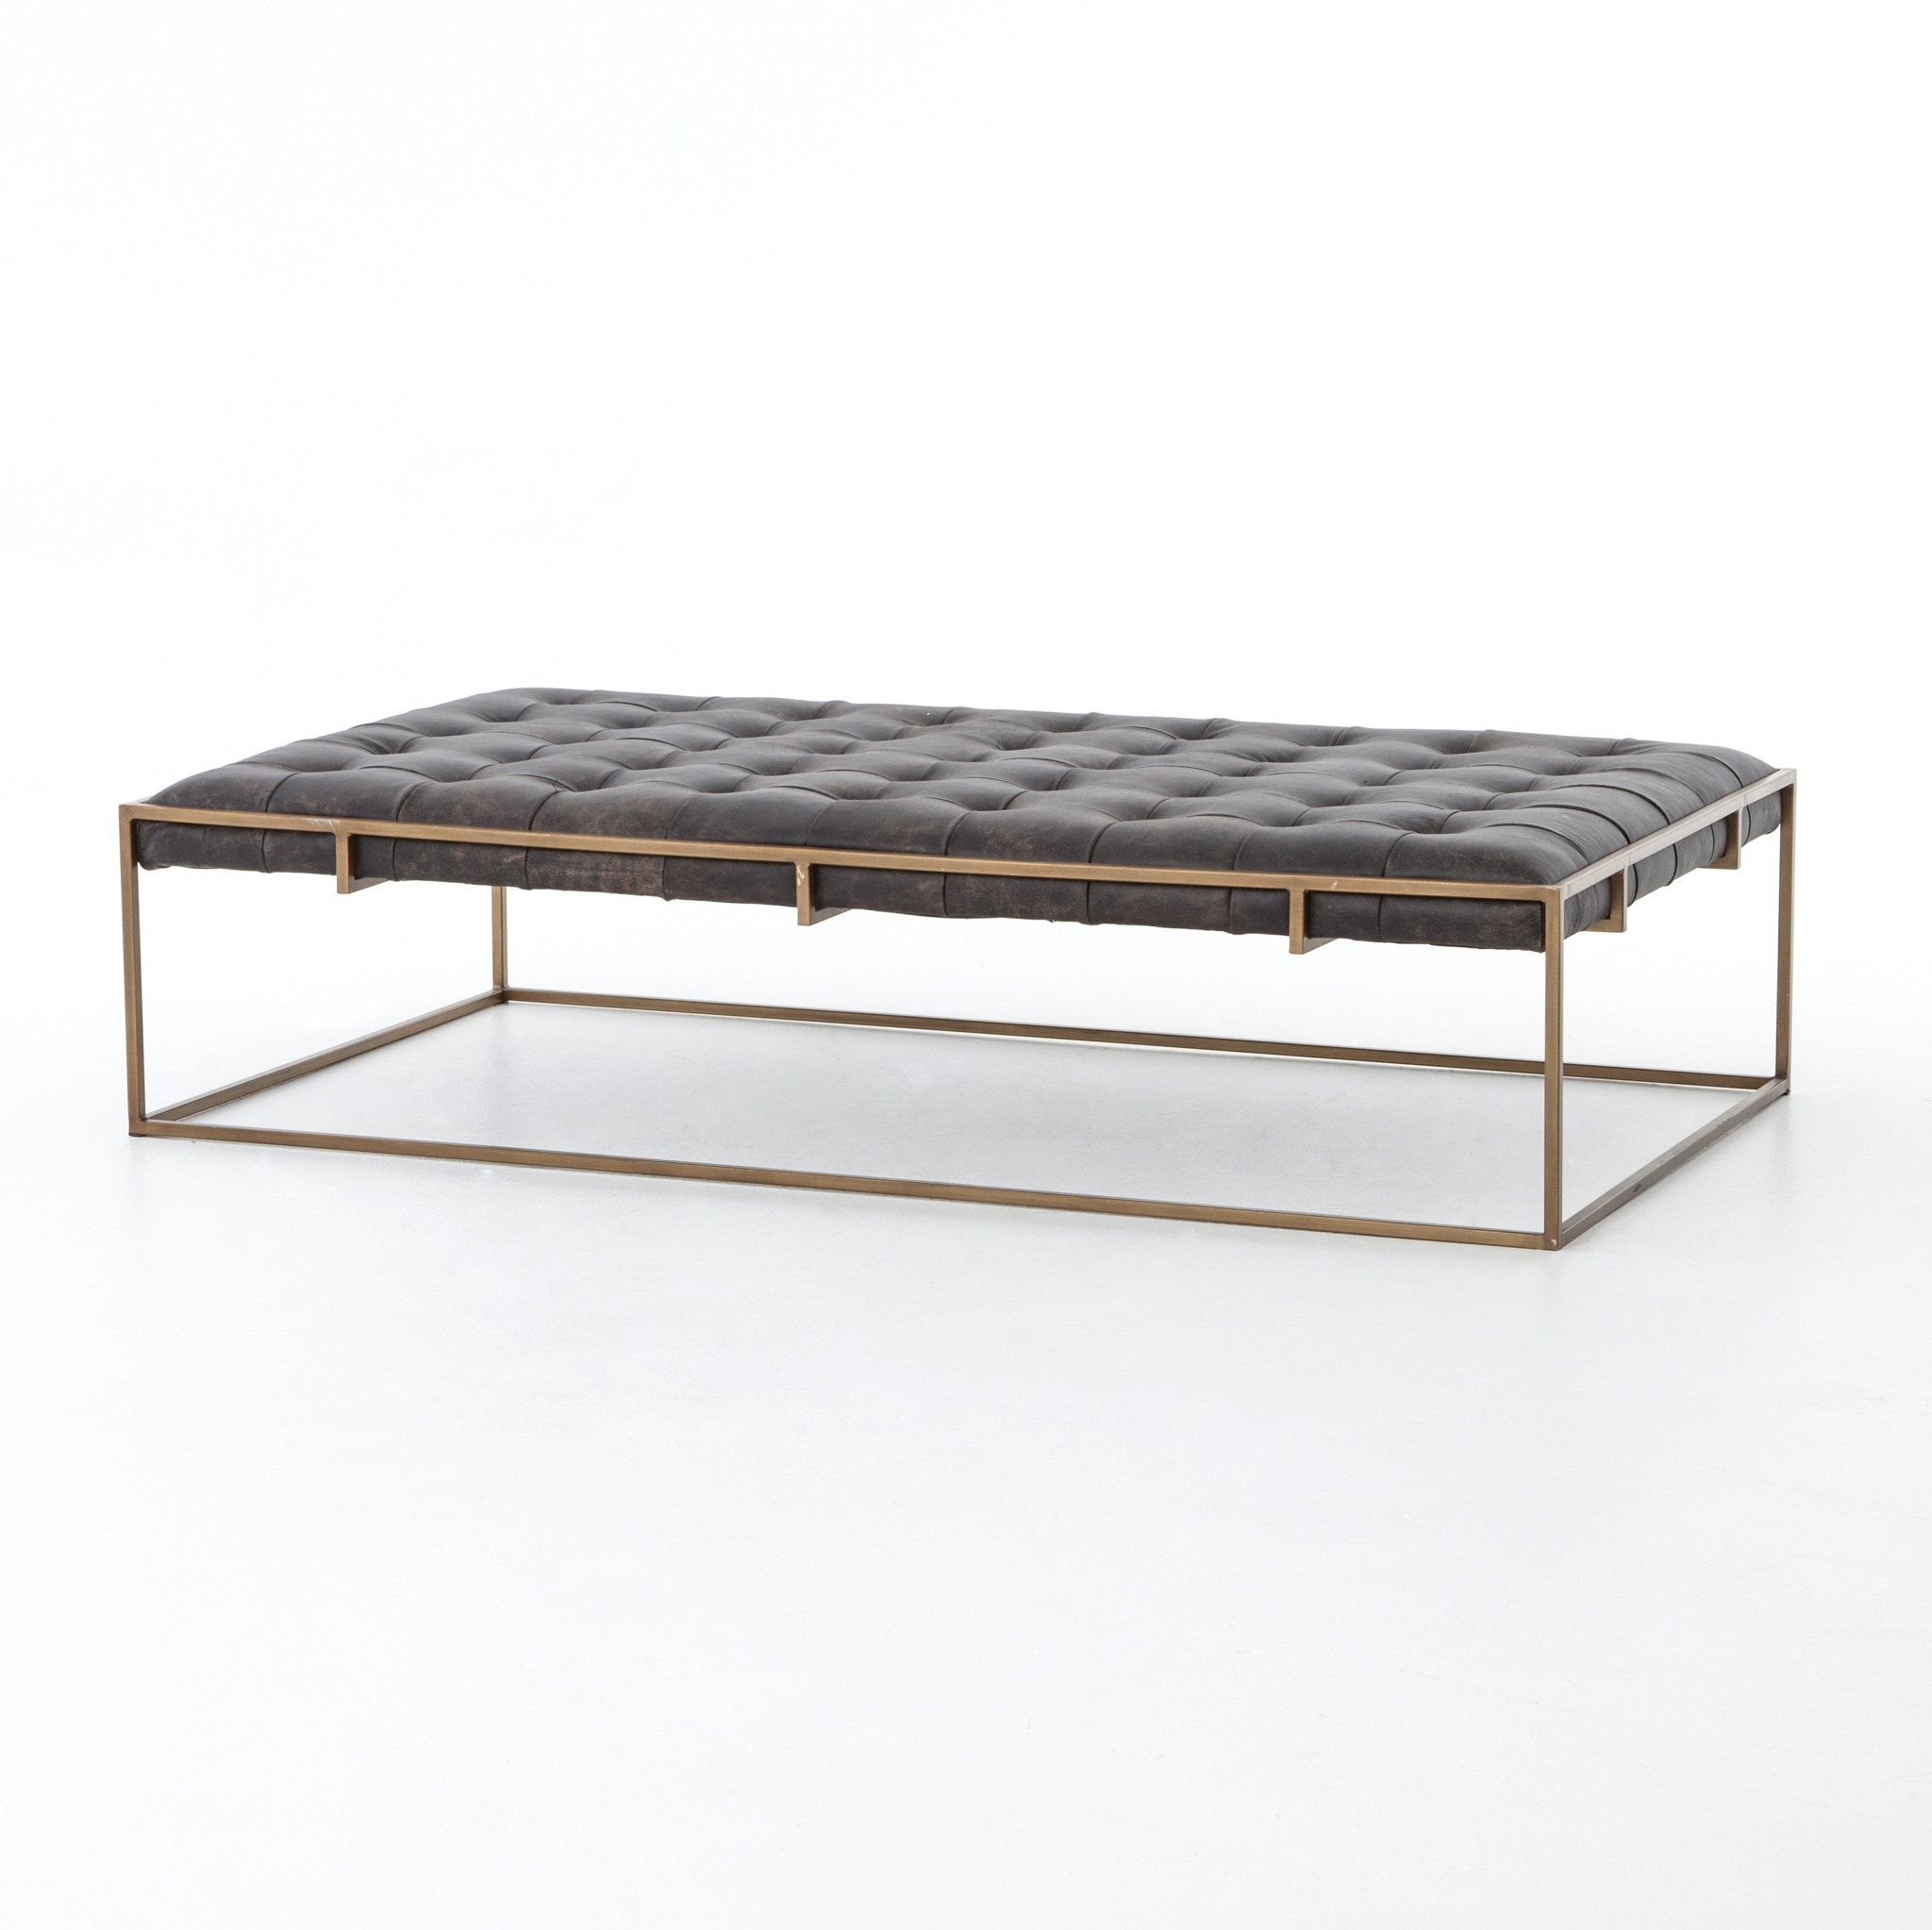 Four Hands Furniture CIRD 143 Living Room OXFORD COFFEE TABLE